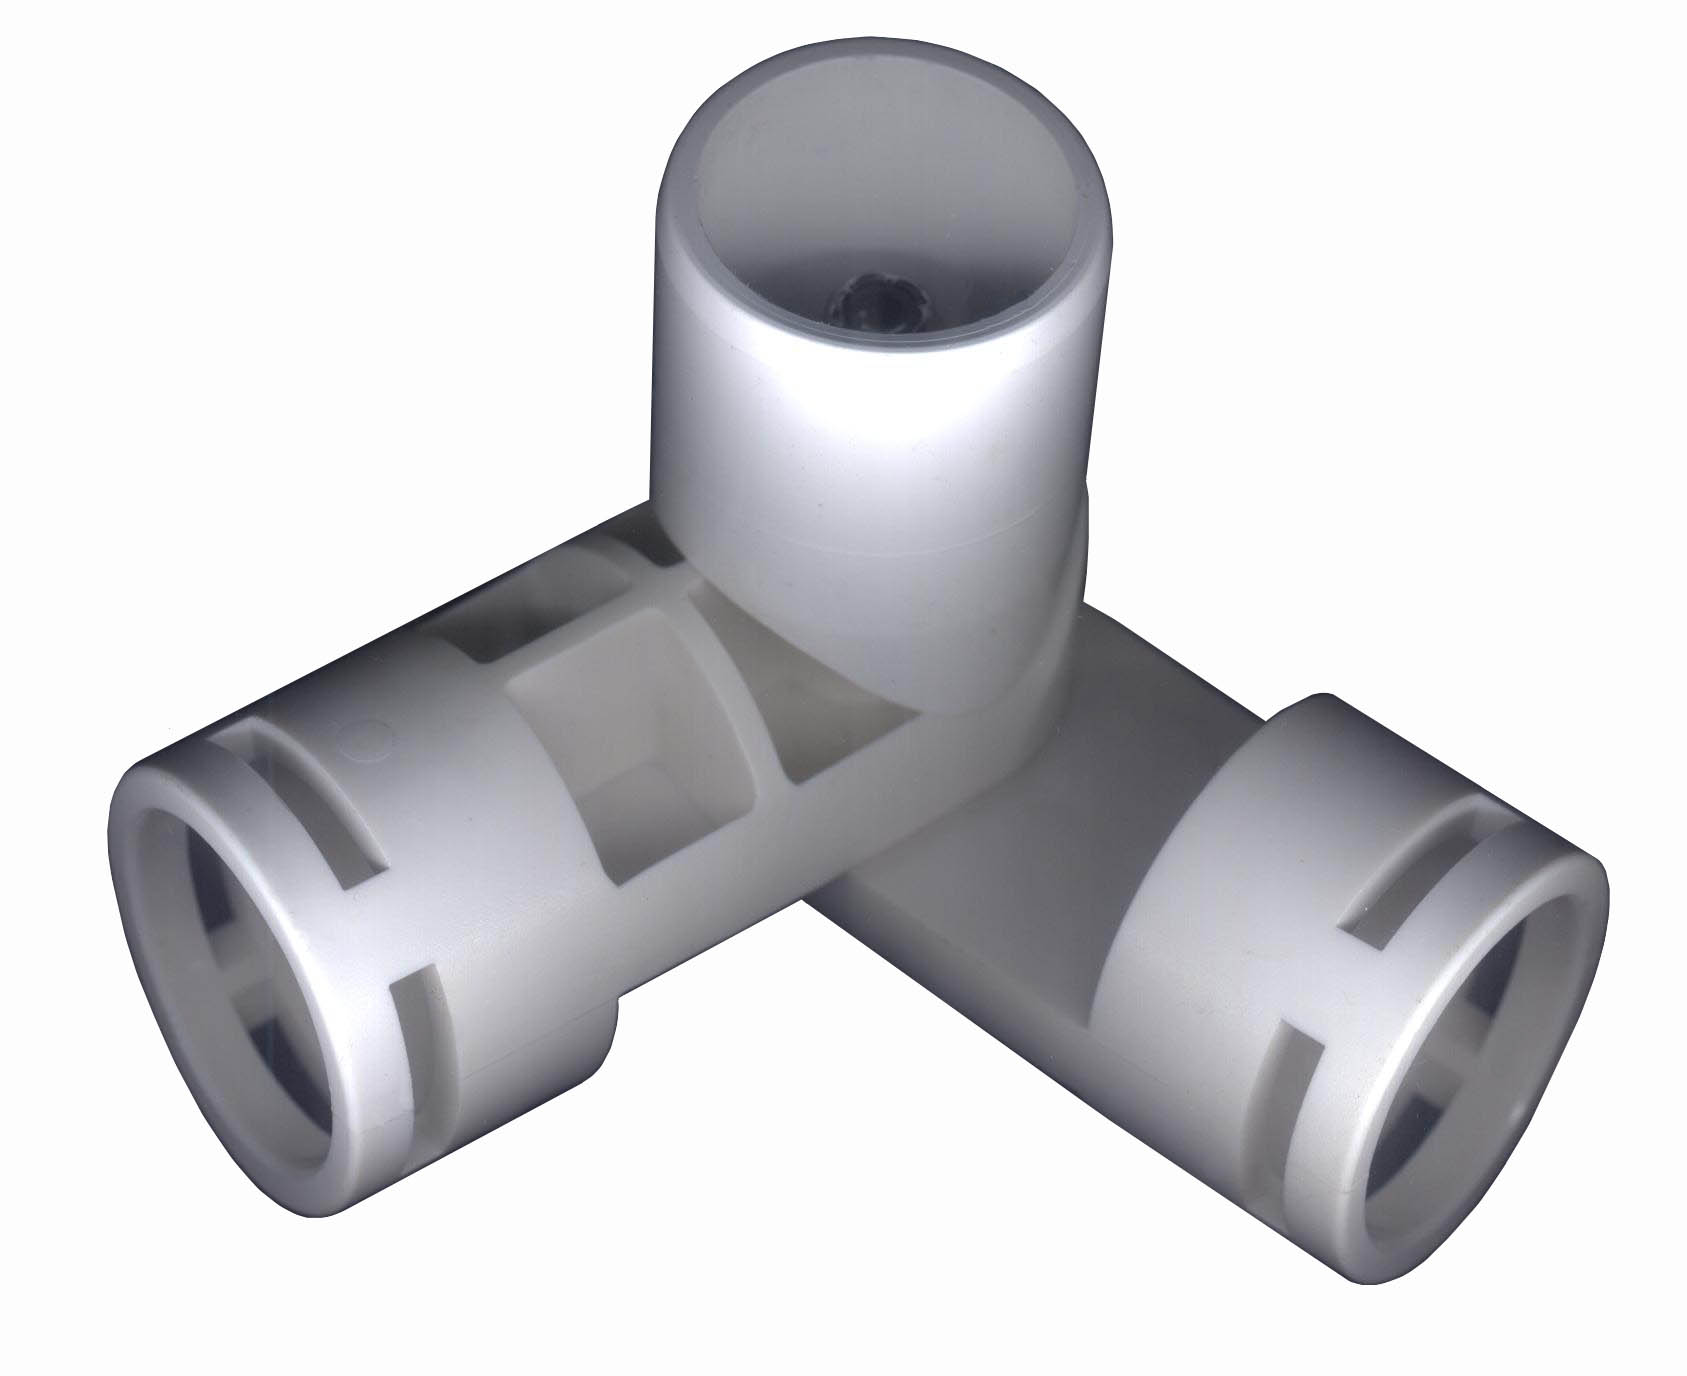 Pvc Joints Adjustable 3 Way Joint Fittings For 1